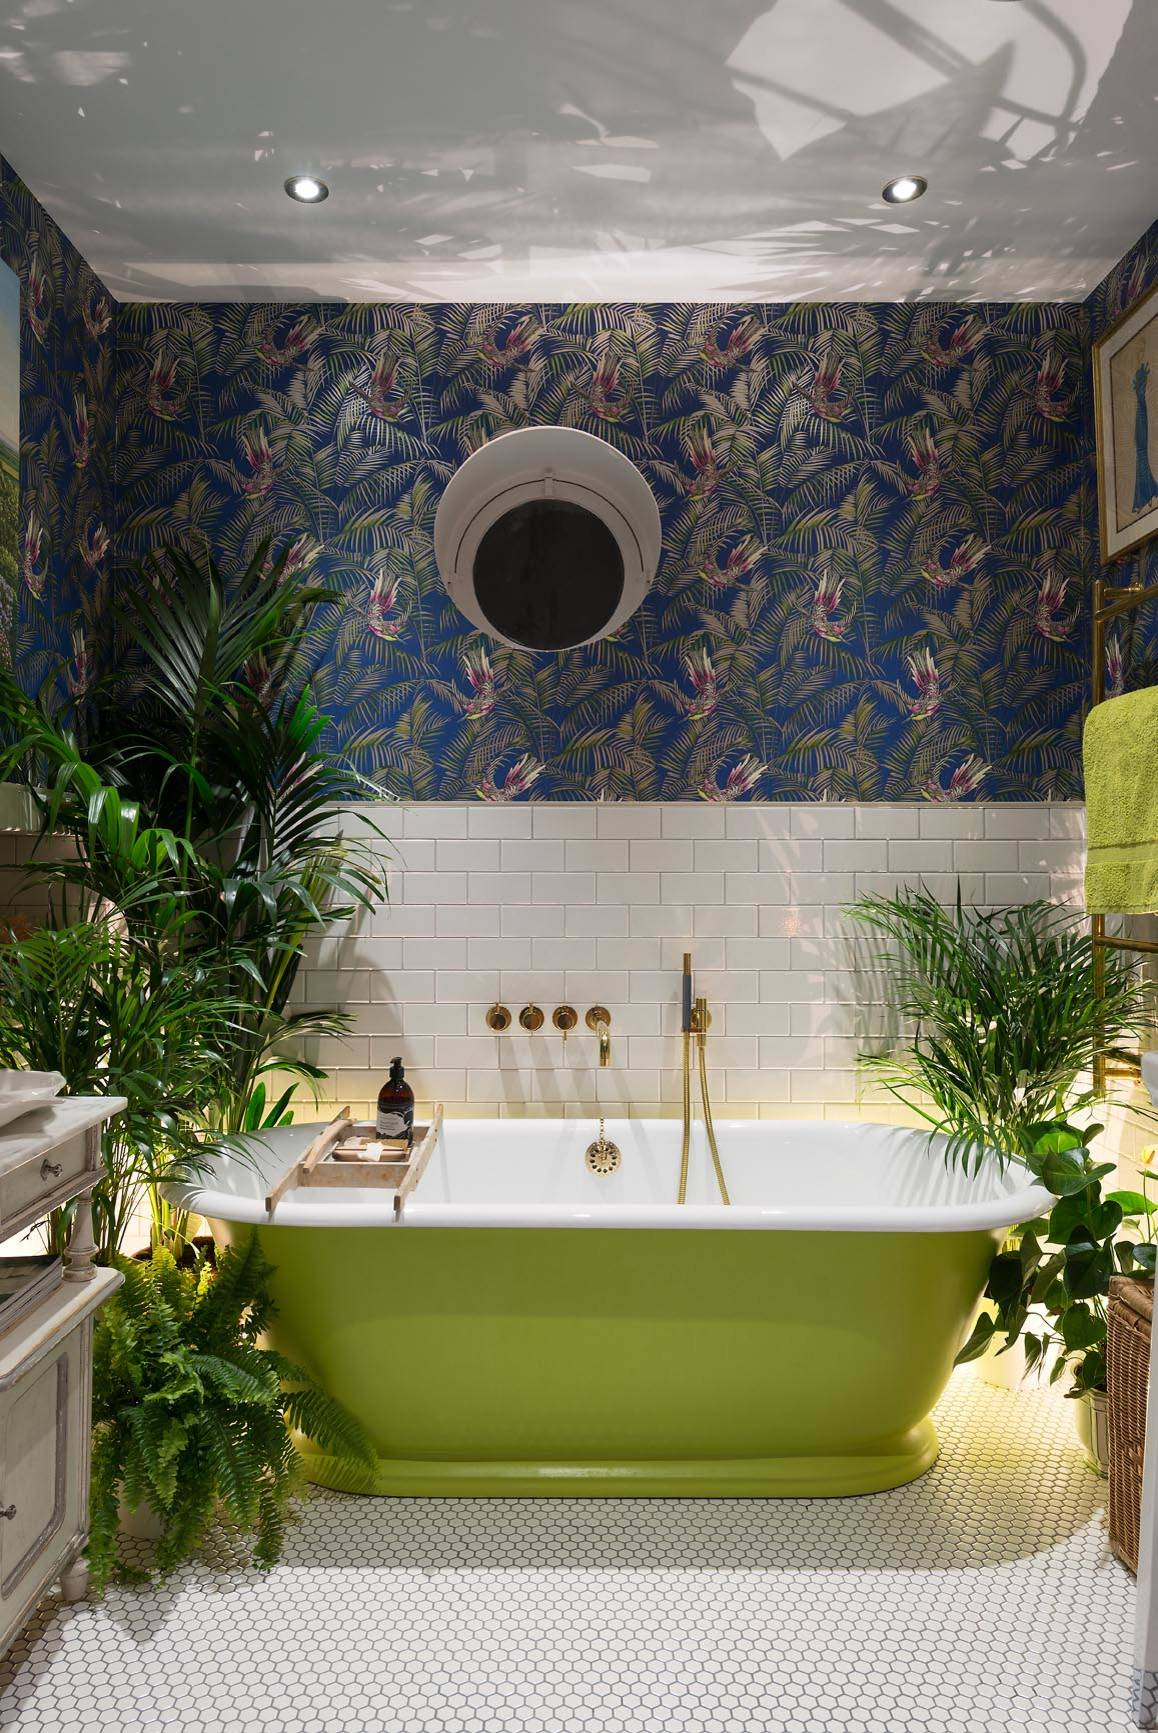 10 Unusual Ways To Decorate Your Bathroom Walls Houzz Uk